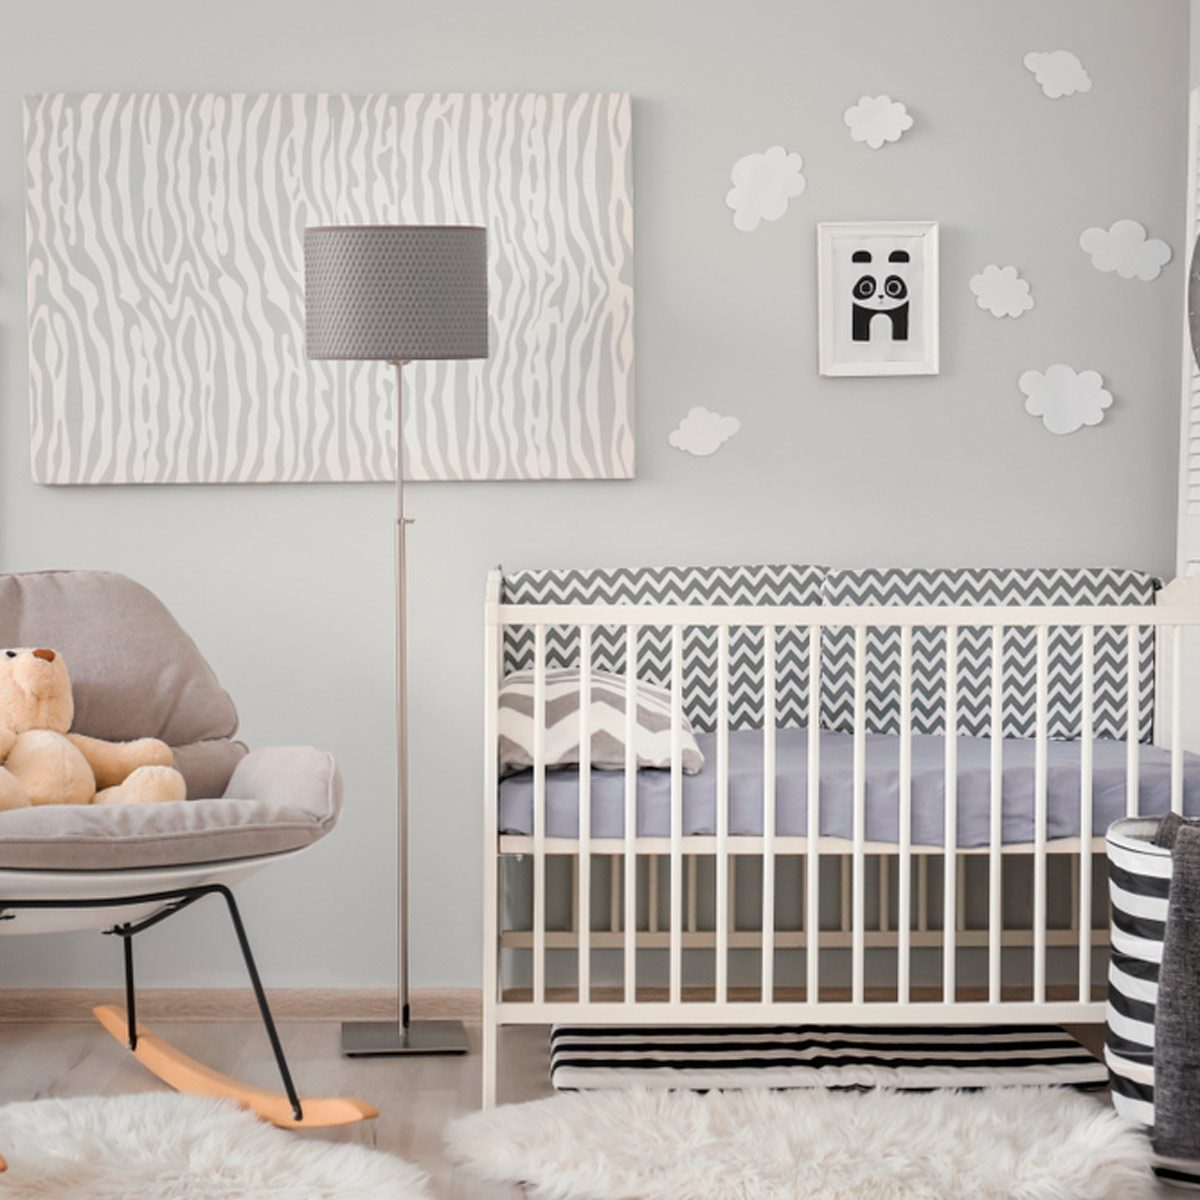 10 Stunning Black And White Bedroom Ideas For Kids The Family Handyman